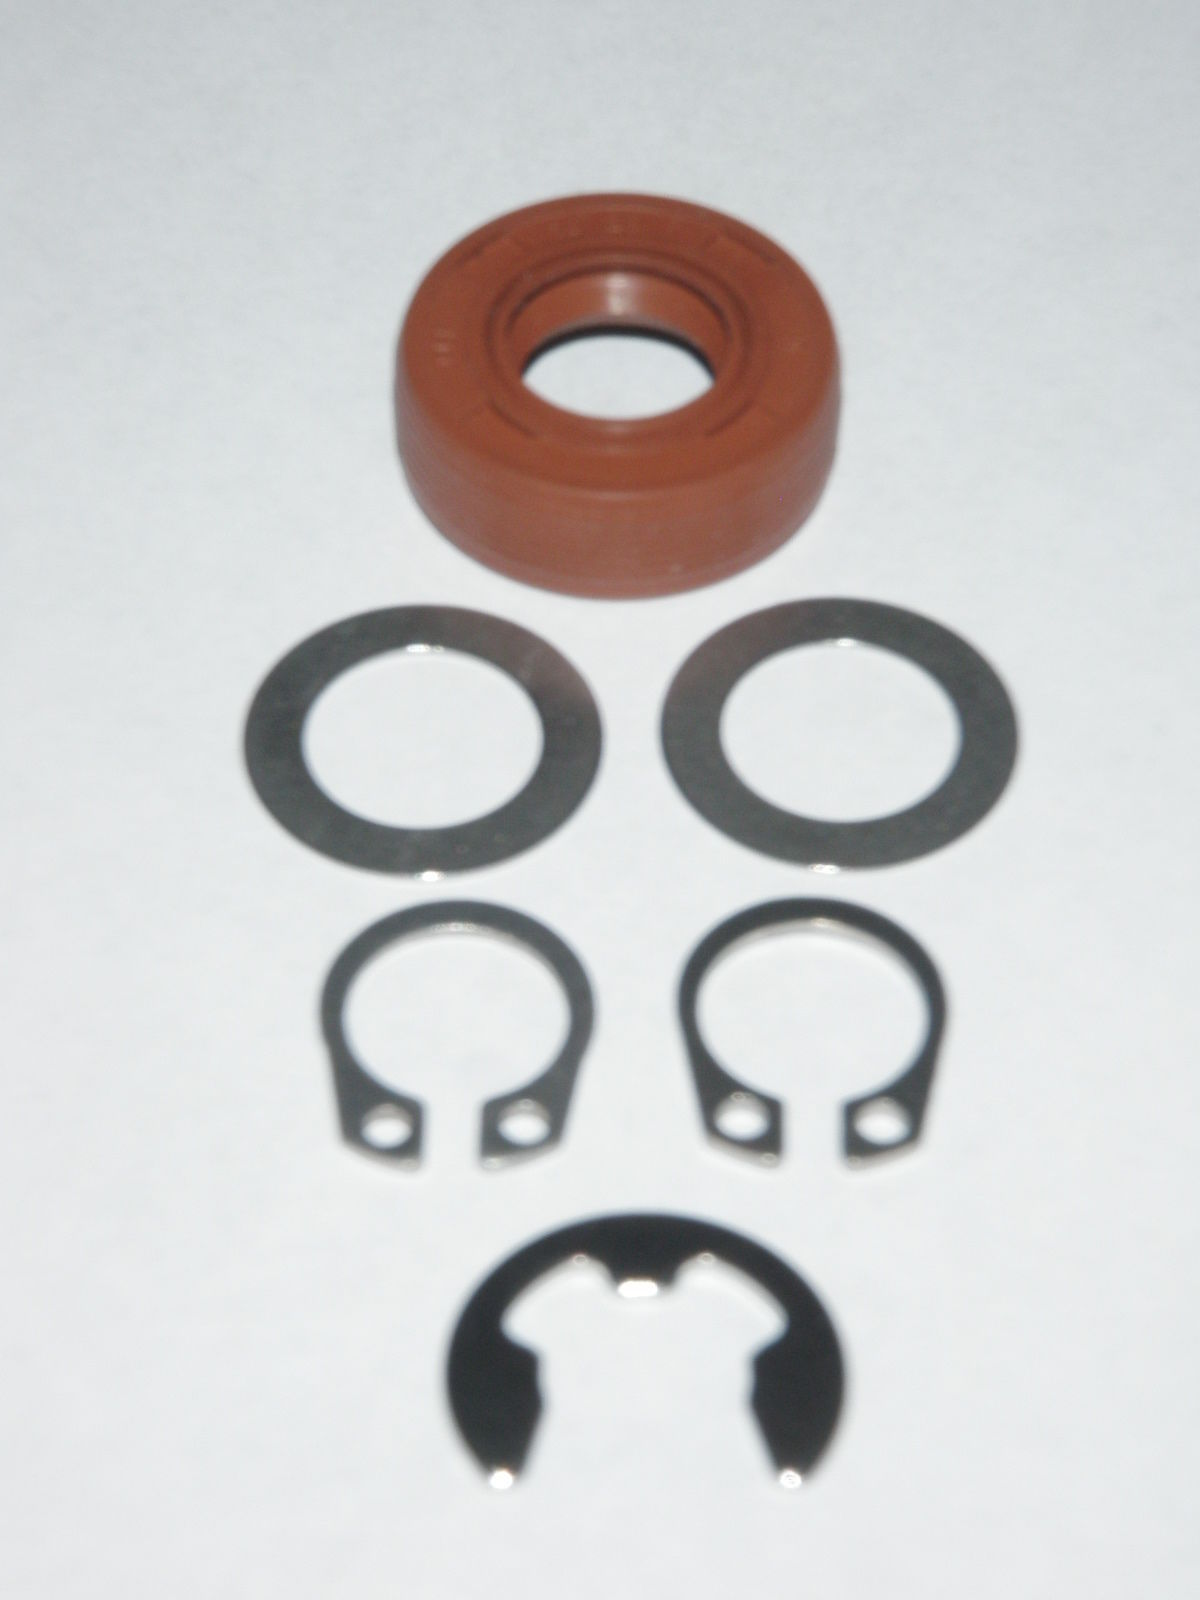 Primary image for Hitachi Bread Maker Heavy Duty Pan Seal Kit for Model HB-C202 (10MKIT-HD)